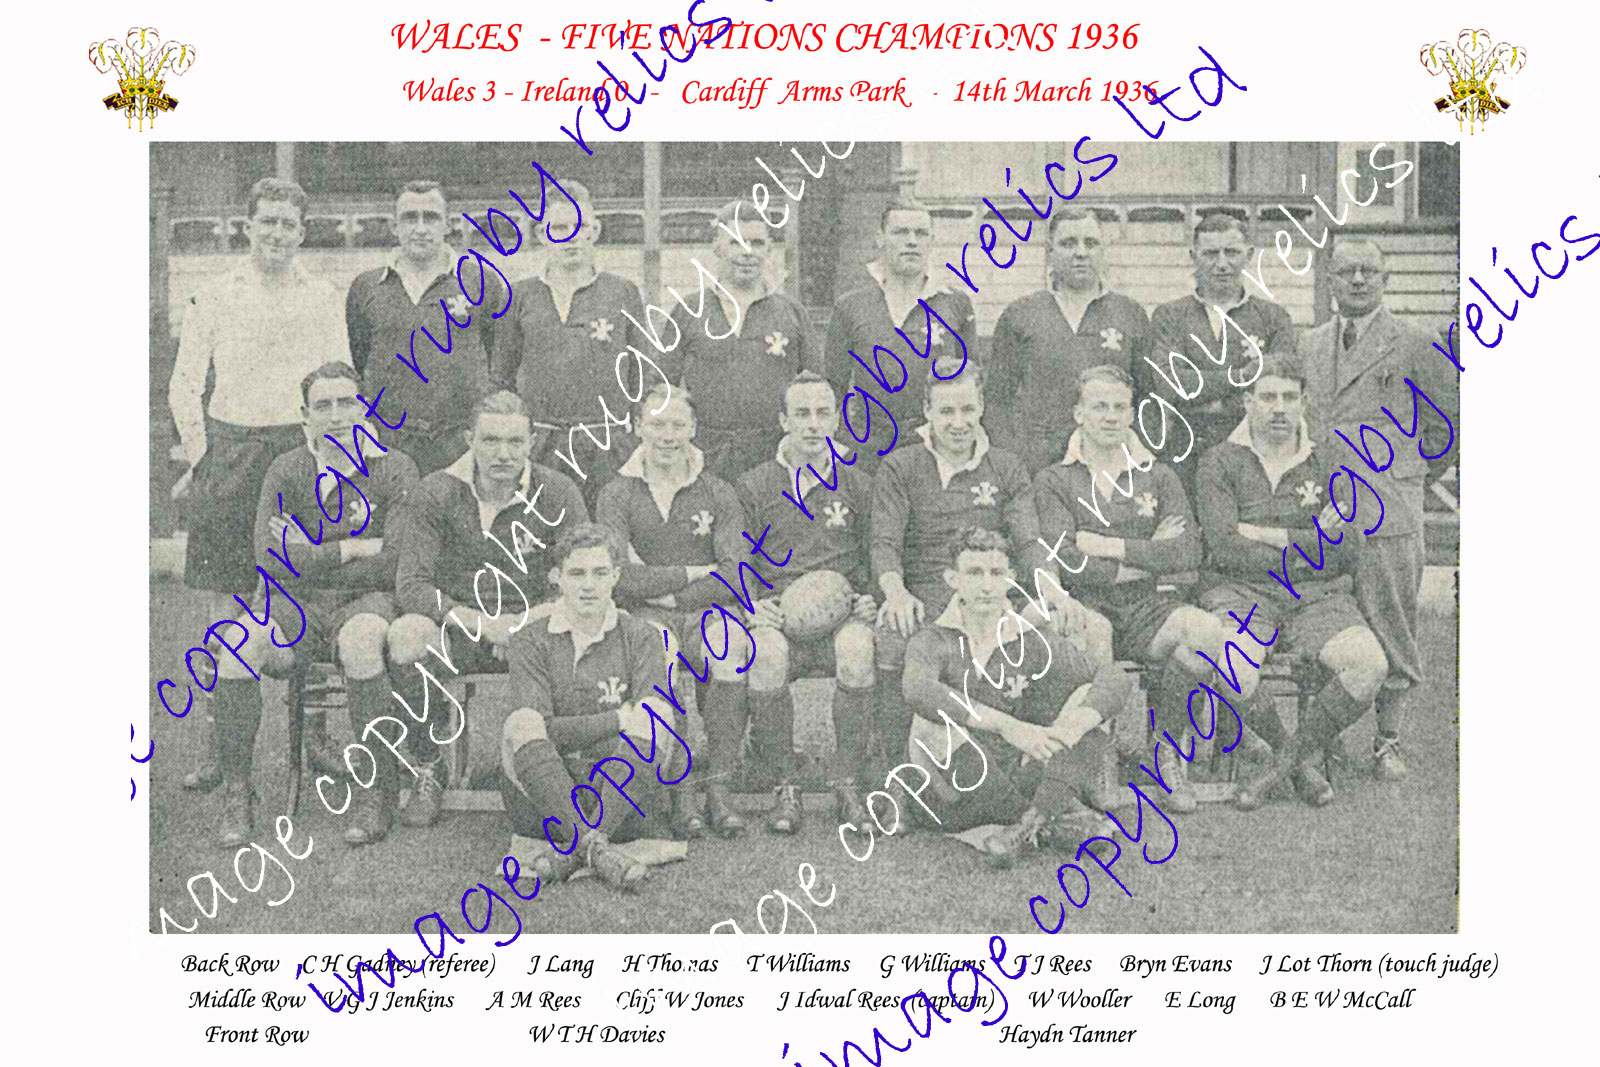 Welsh Rugby Photographs - Teams & Players of Wales